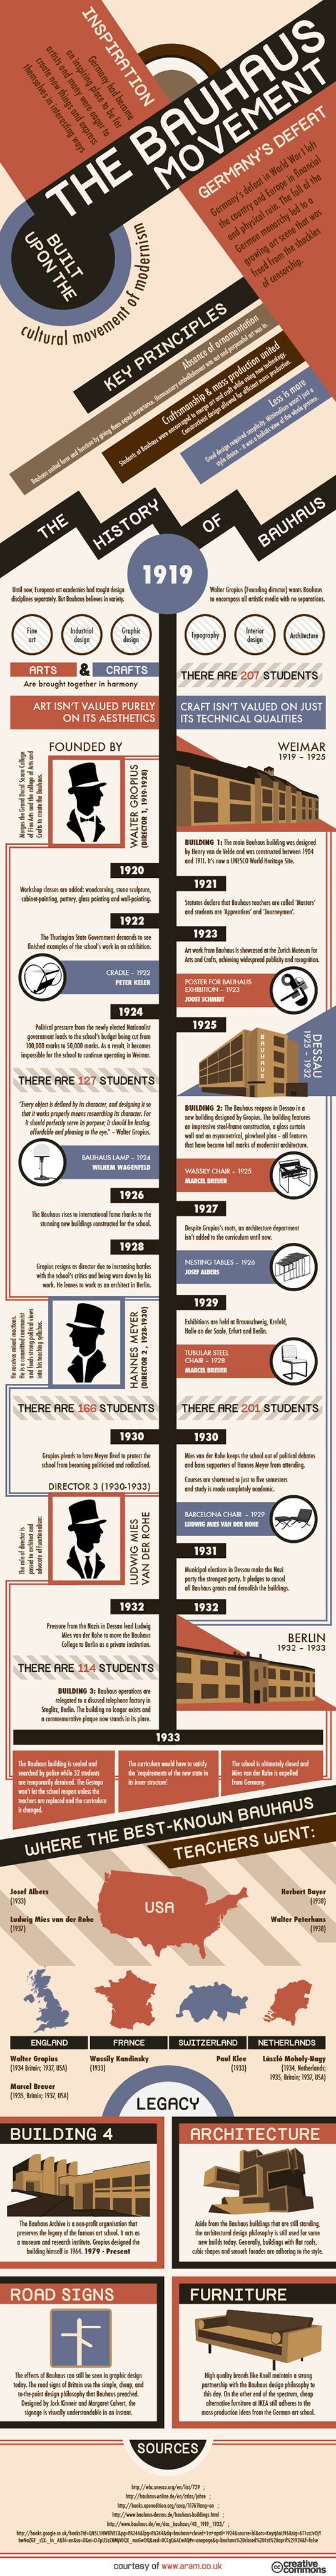 Nice info graphic describing the History of the Bauhaus. There is one error - the Bauhaus was not a movement it was an art and design school which embraced certain elements of the modern movement.